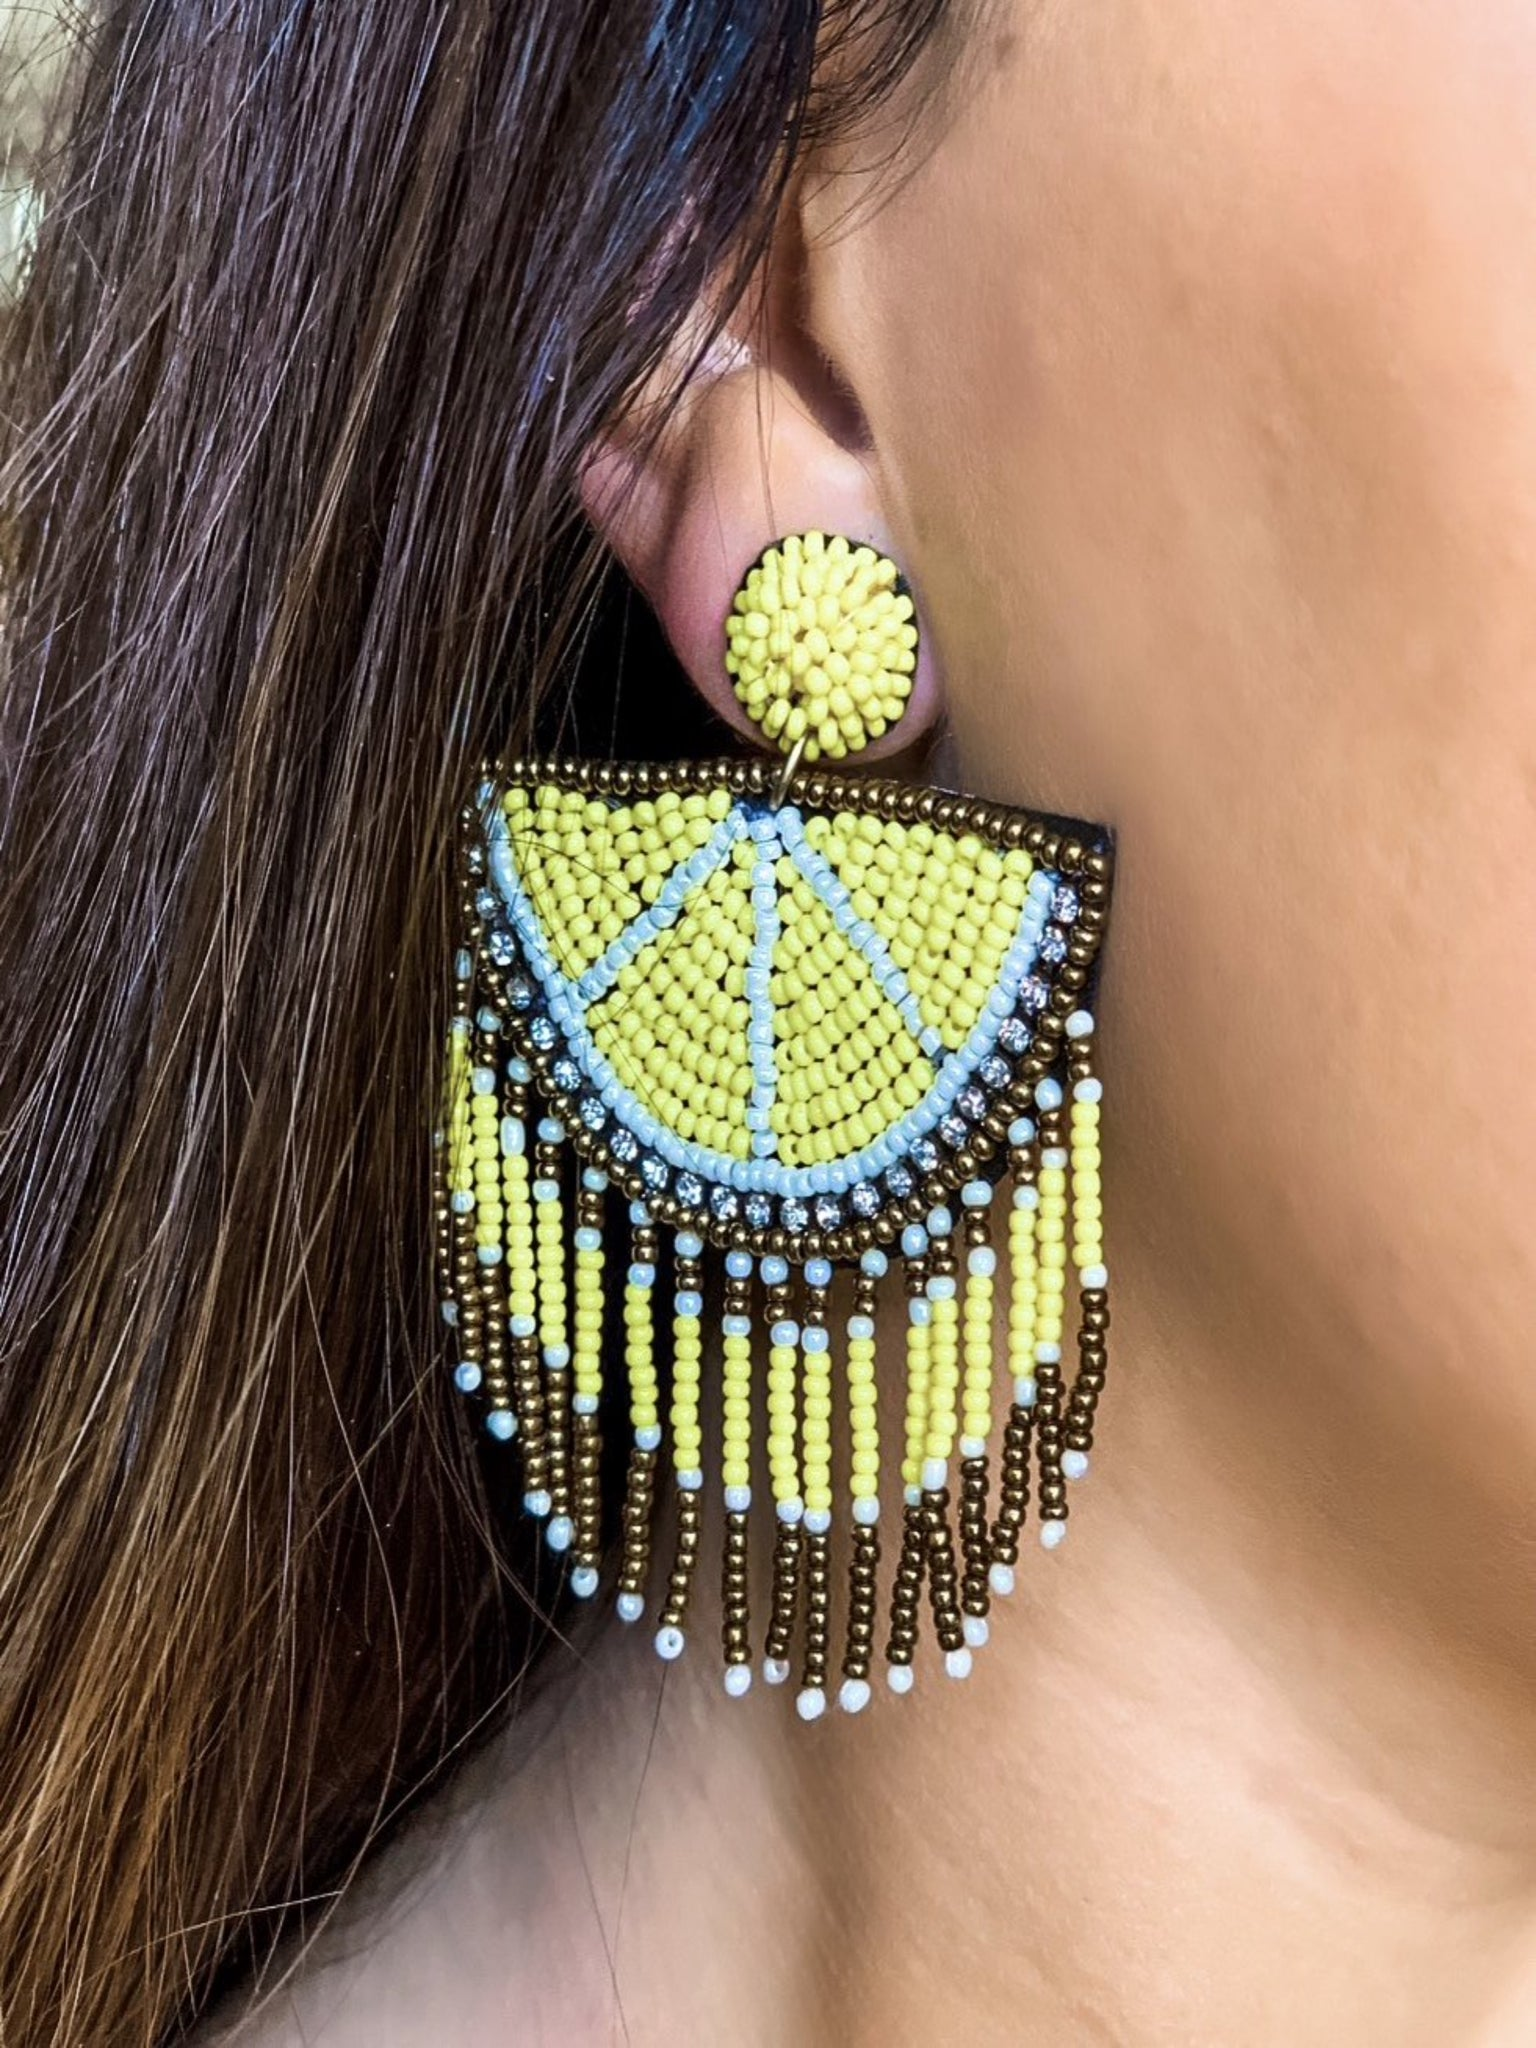 Lemon Half Beaded Earrings - Vintage Cotton Boutique